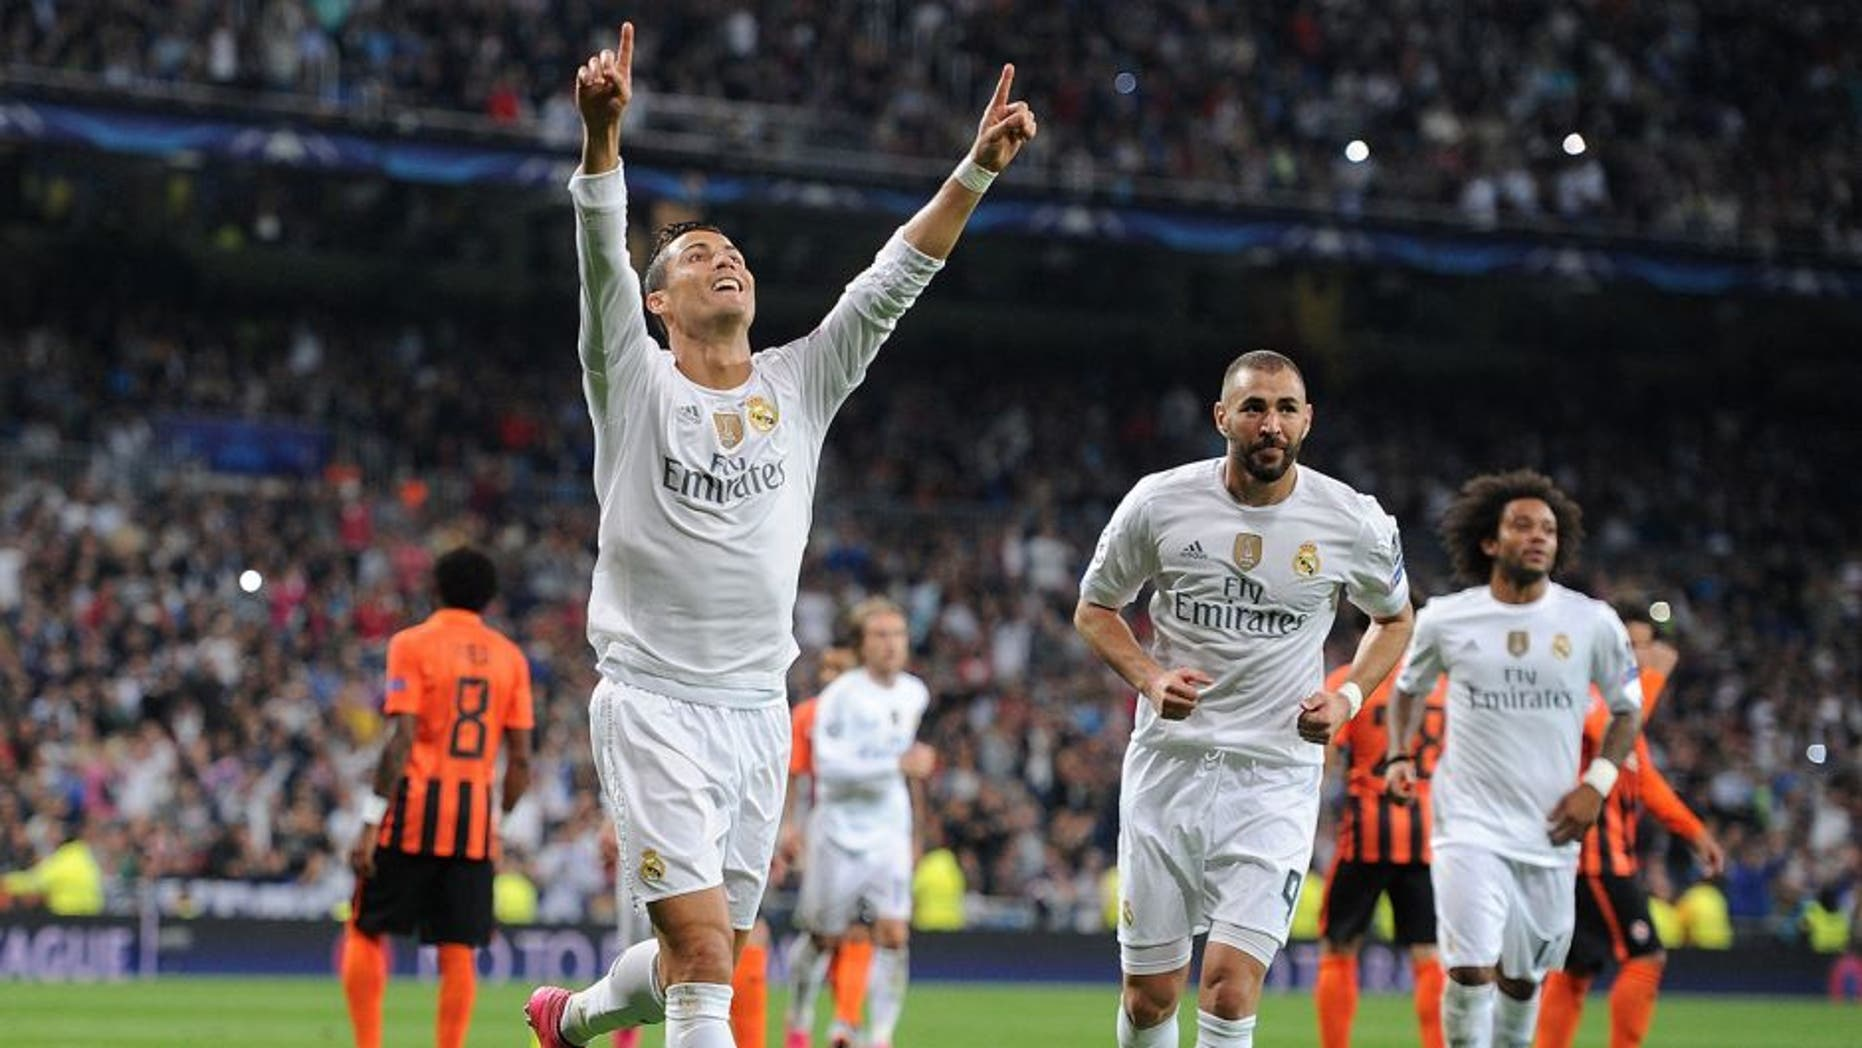 MADRID, SPAIN - SEPTEMBER 15: Cristiano Ronaldo of Real Madrid celebrates after scoring Real's 2nd goal from the penalty spot during the UEFA Champions League Group A match between Real Madrid and Shakhtar Donetsk at estadio Santiago Bernabeu on September 15, 2015 in Madrid, Spain. (Photo by Denis Doyle/Getty Images)